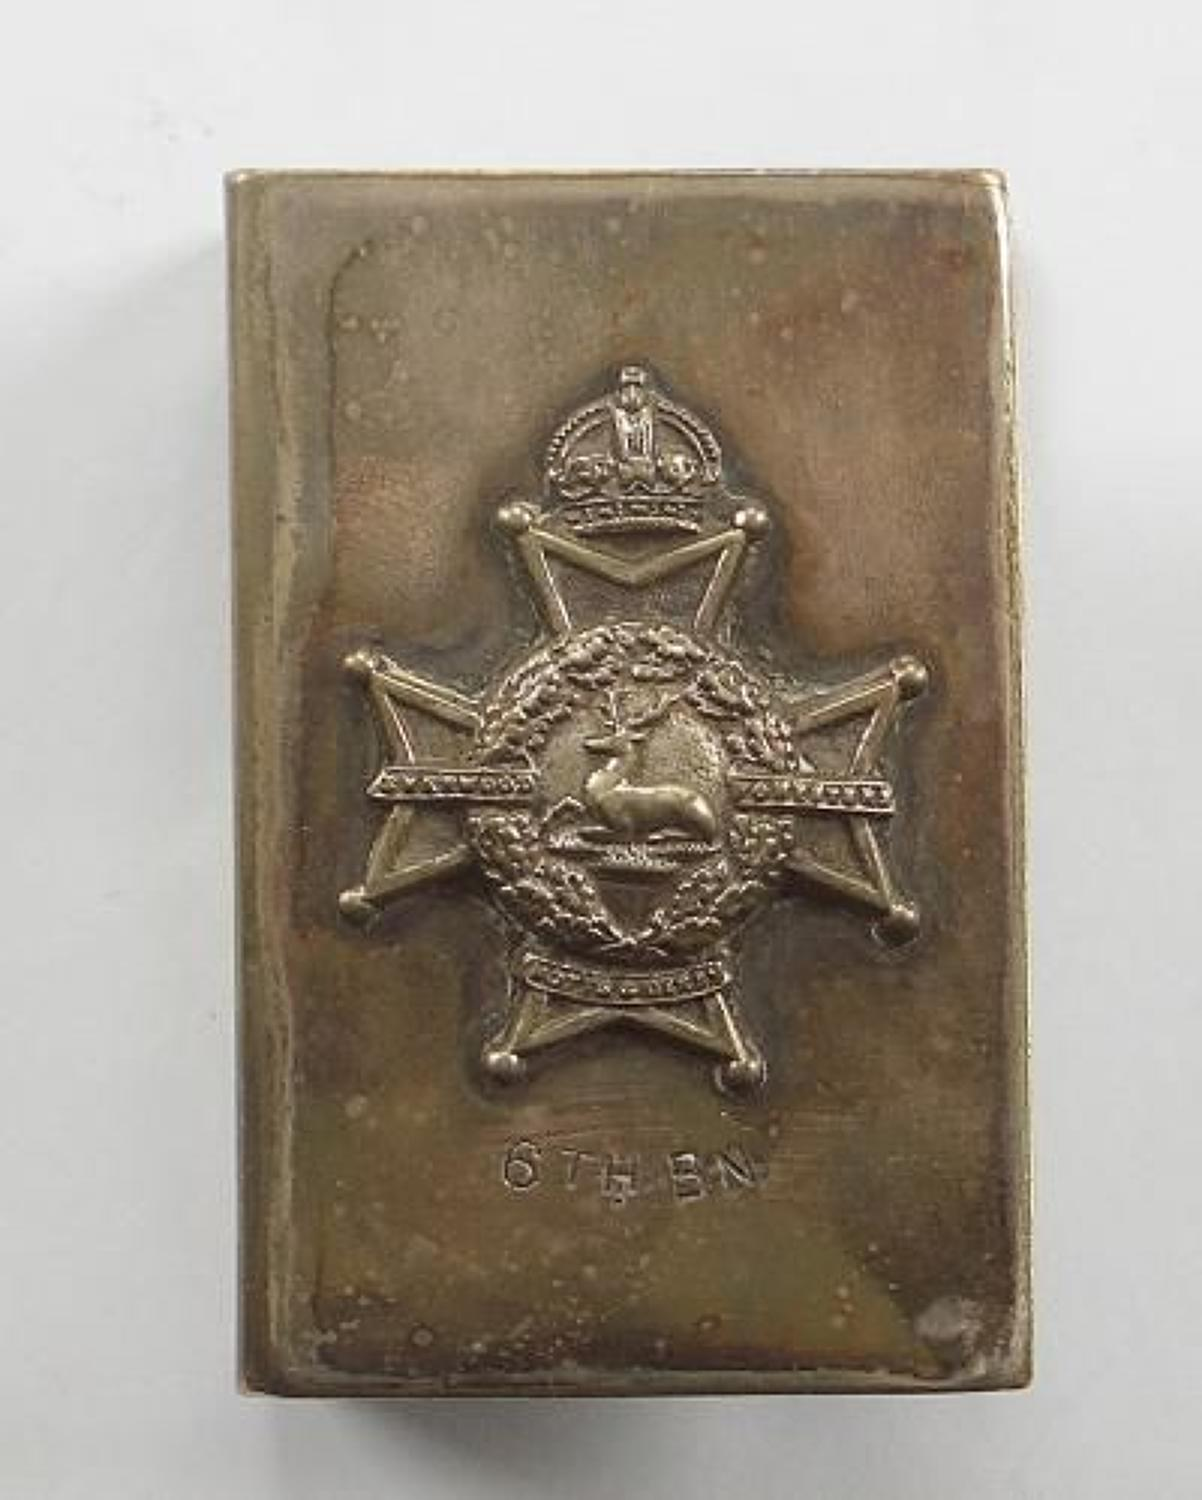 6th Bn. Sherwood Foresters (Notts & Derby) 1933 Matchbox Cover